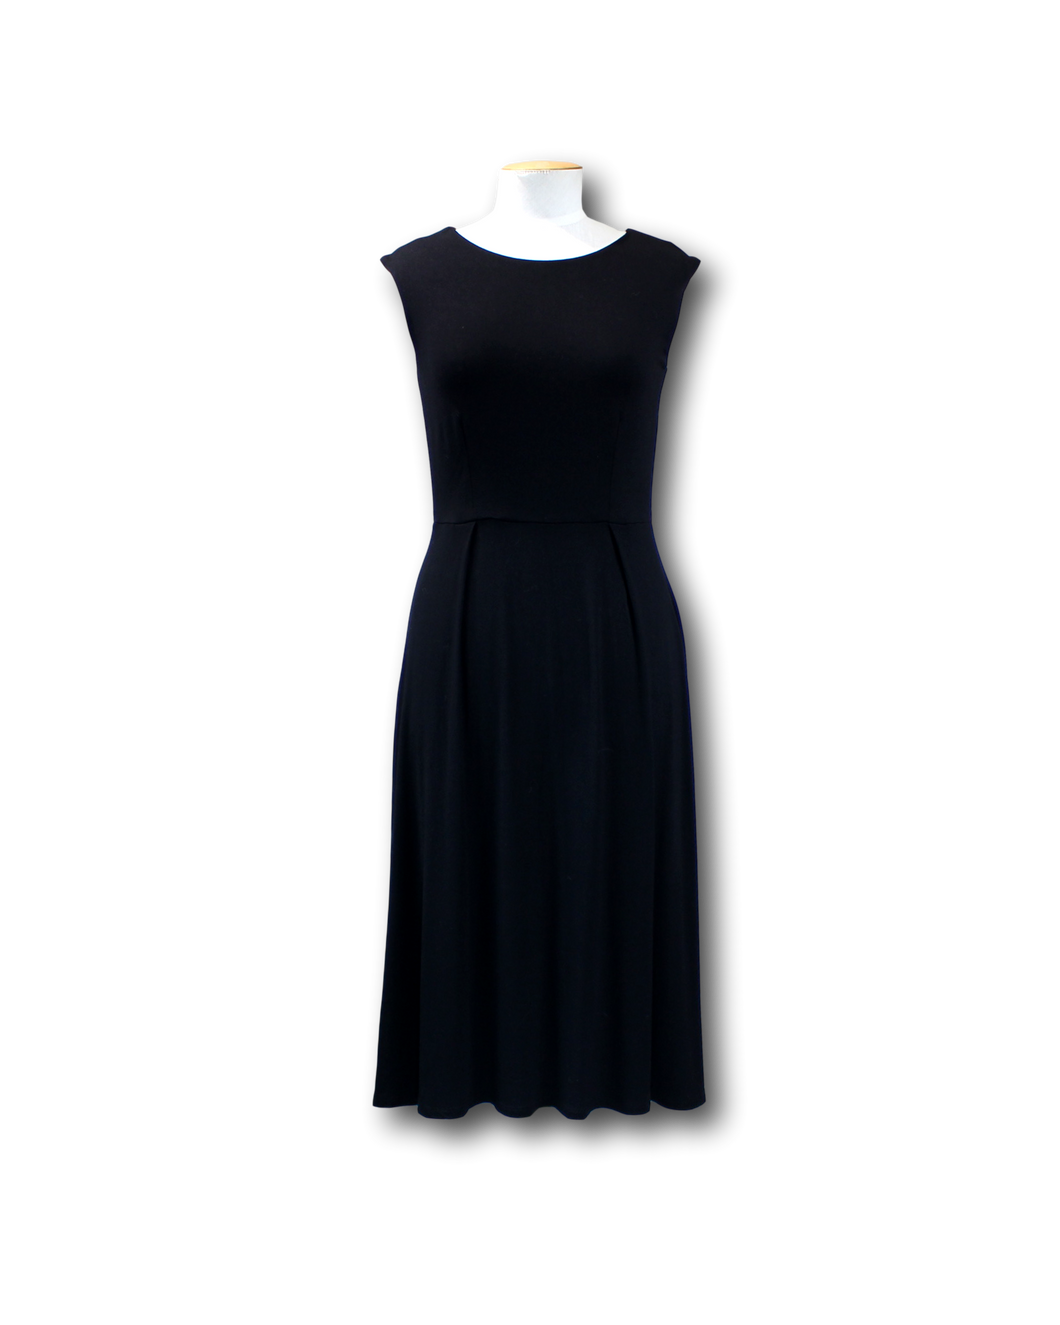 Boden Jersey Knit Dress - Size 10